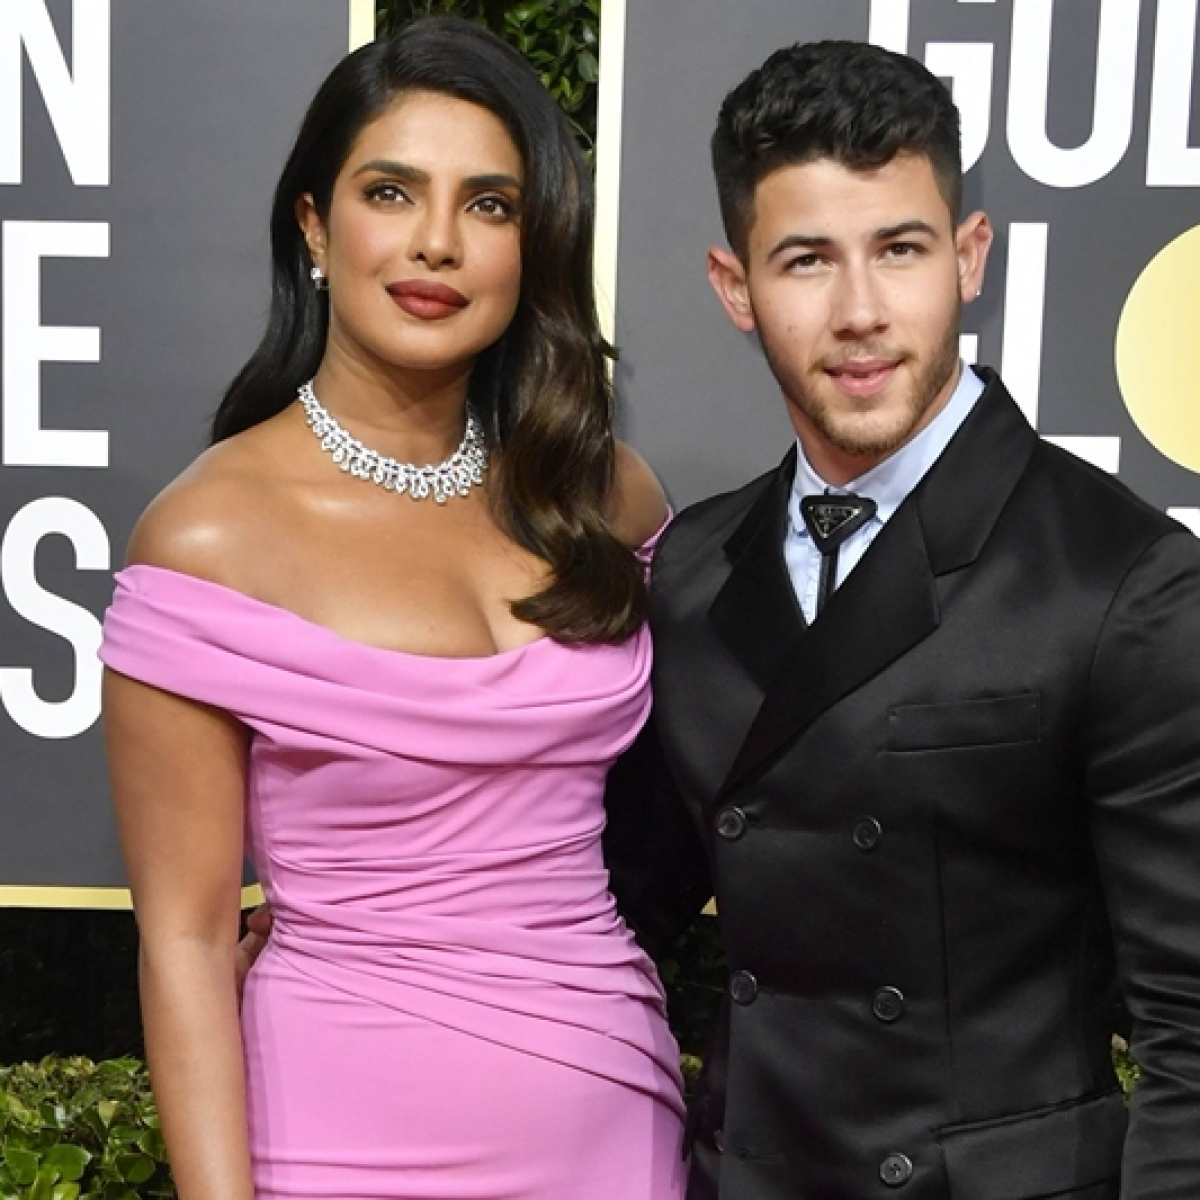 Pretty in Pink: Priyanka Chopra and Nick Jonas arrive in style at the Golden Globes 2020